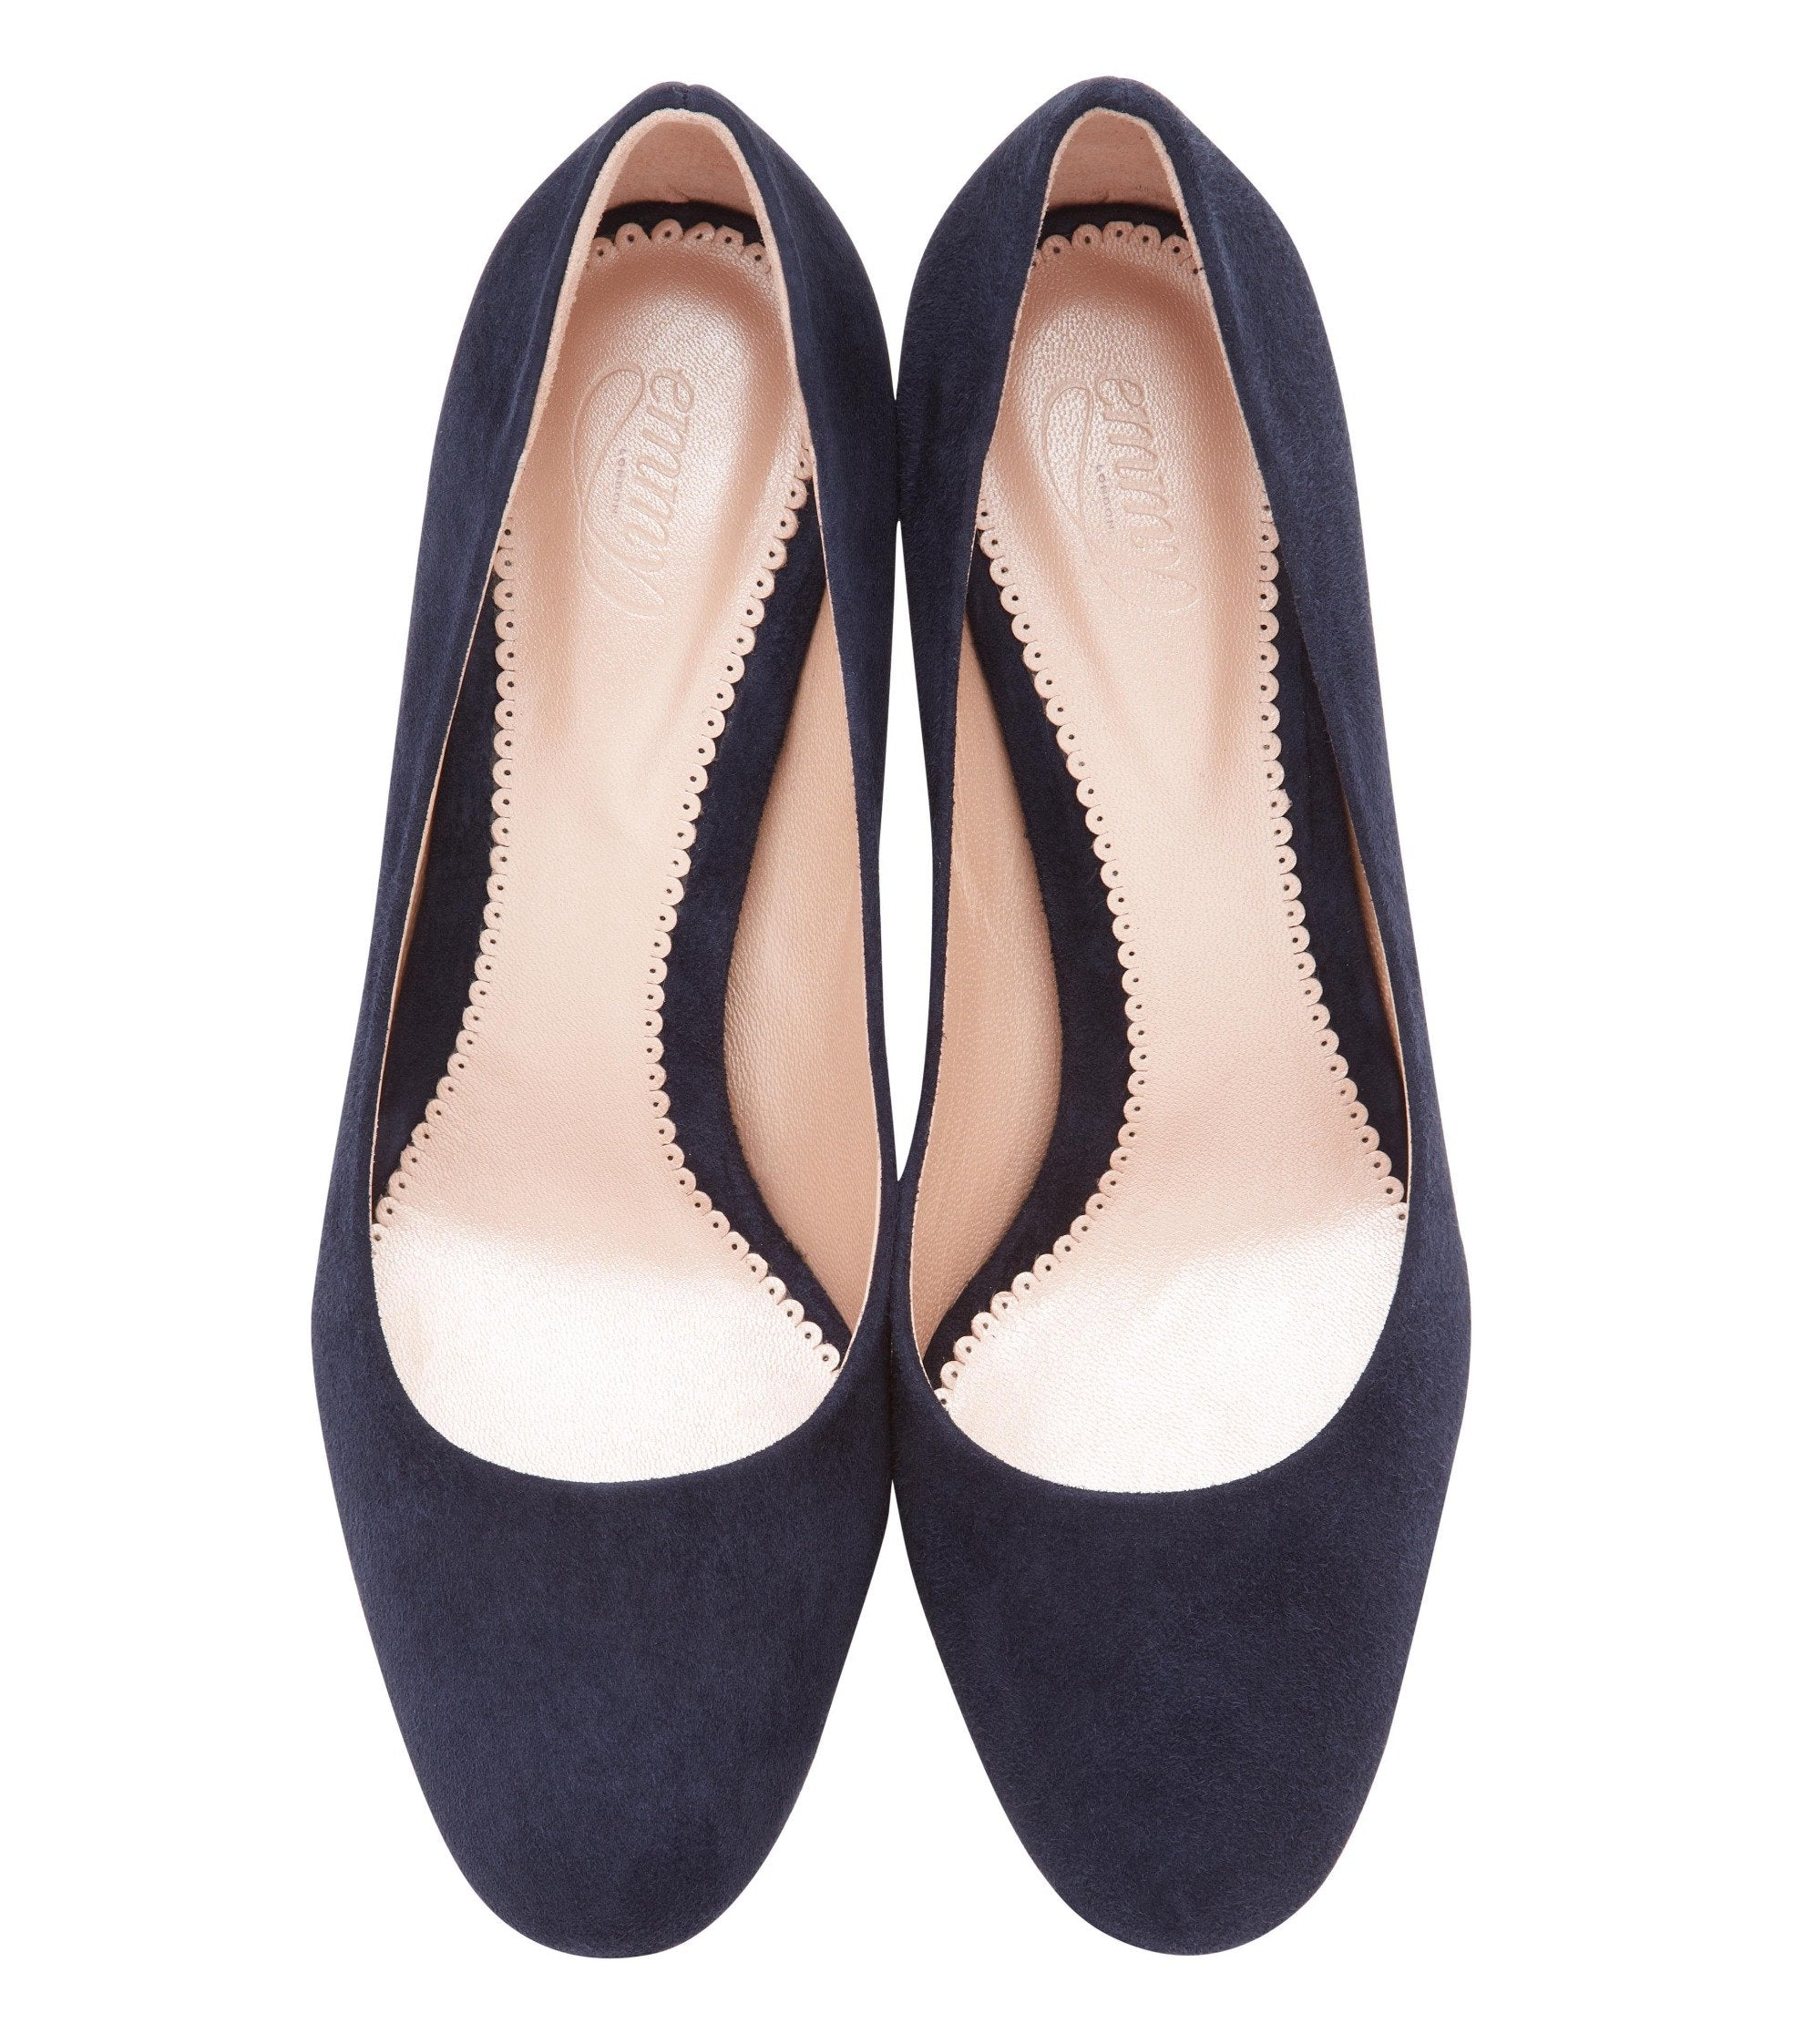 Poppy Midnight Suede Court Shoes By Emmy London Overhead